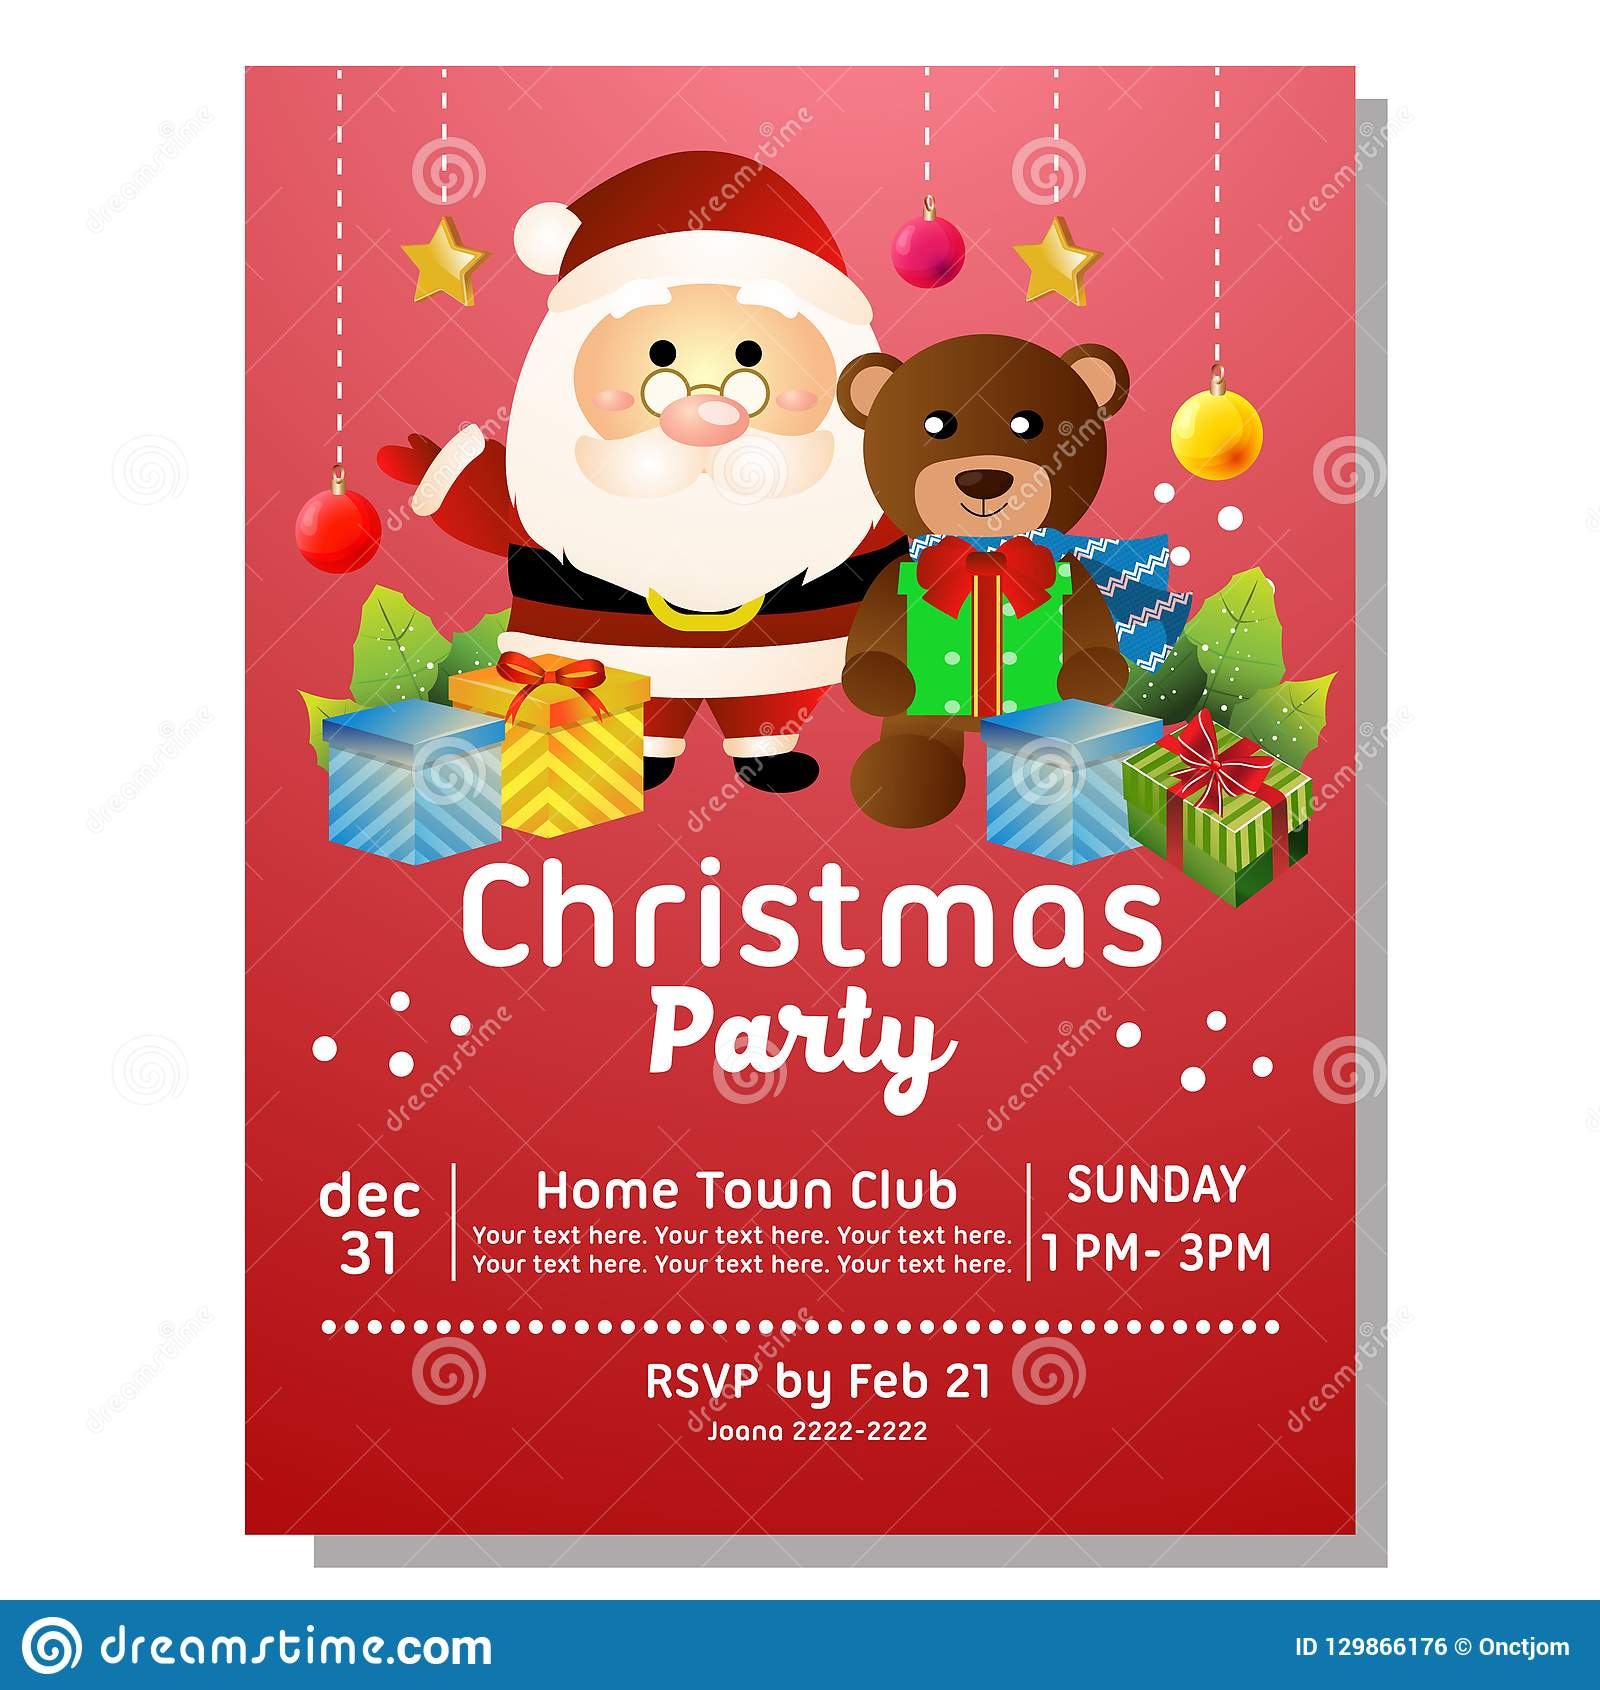 Colorful Christmas Party Invitation Card With Santa And Bear